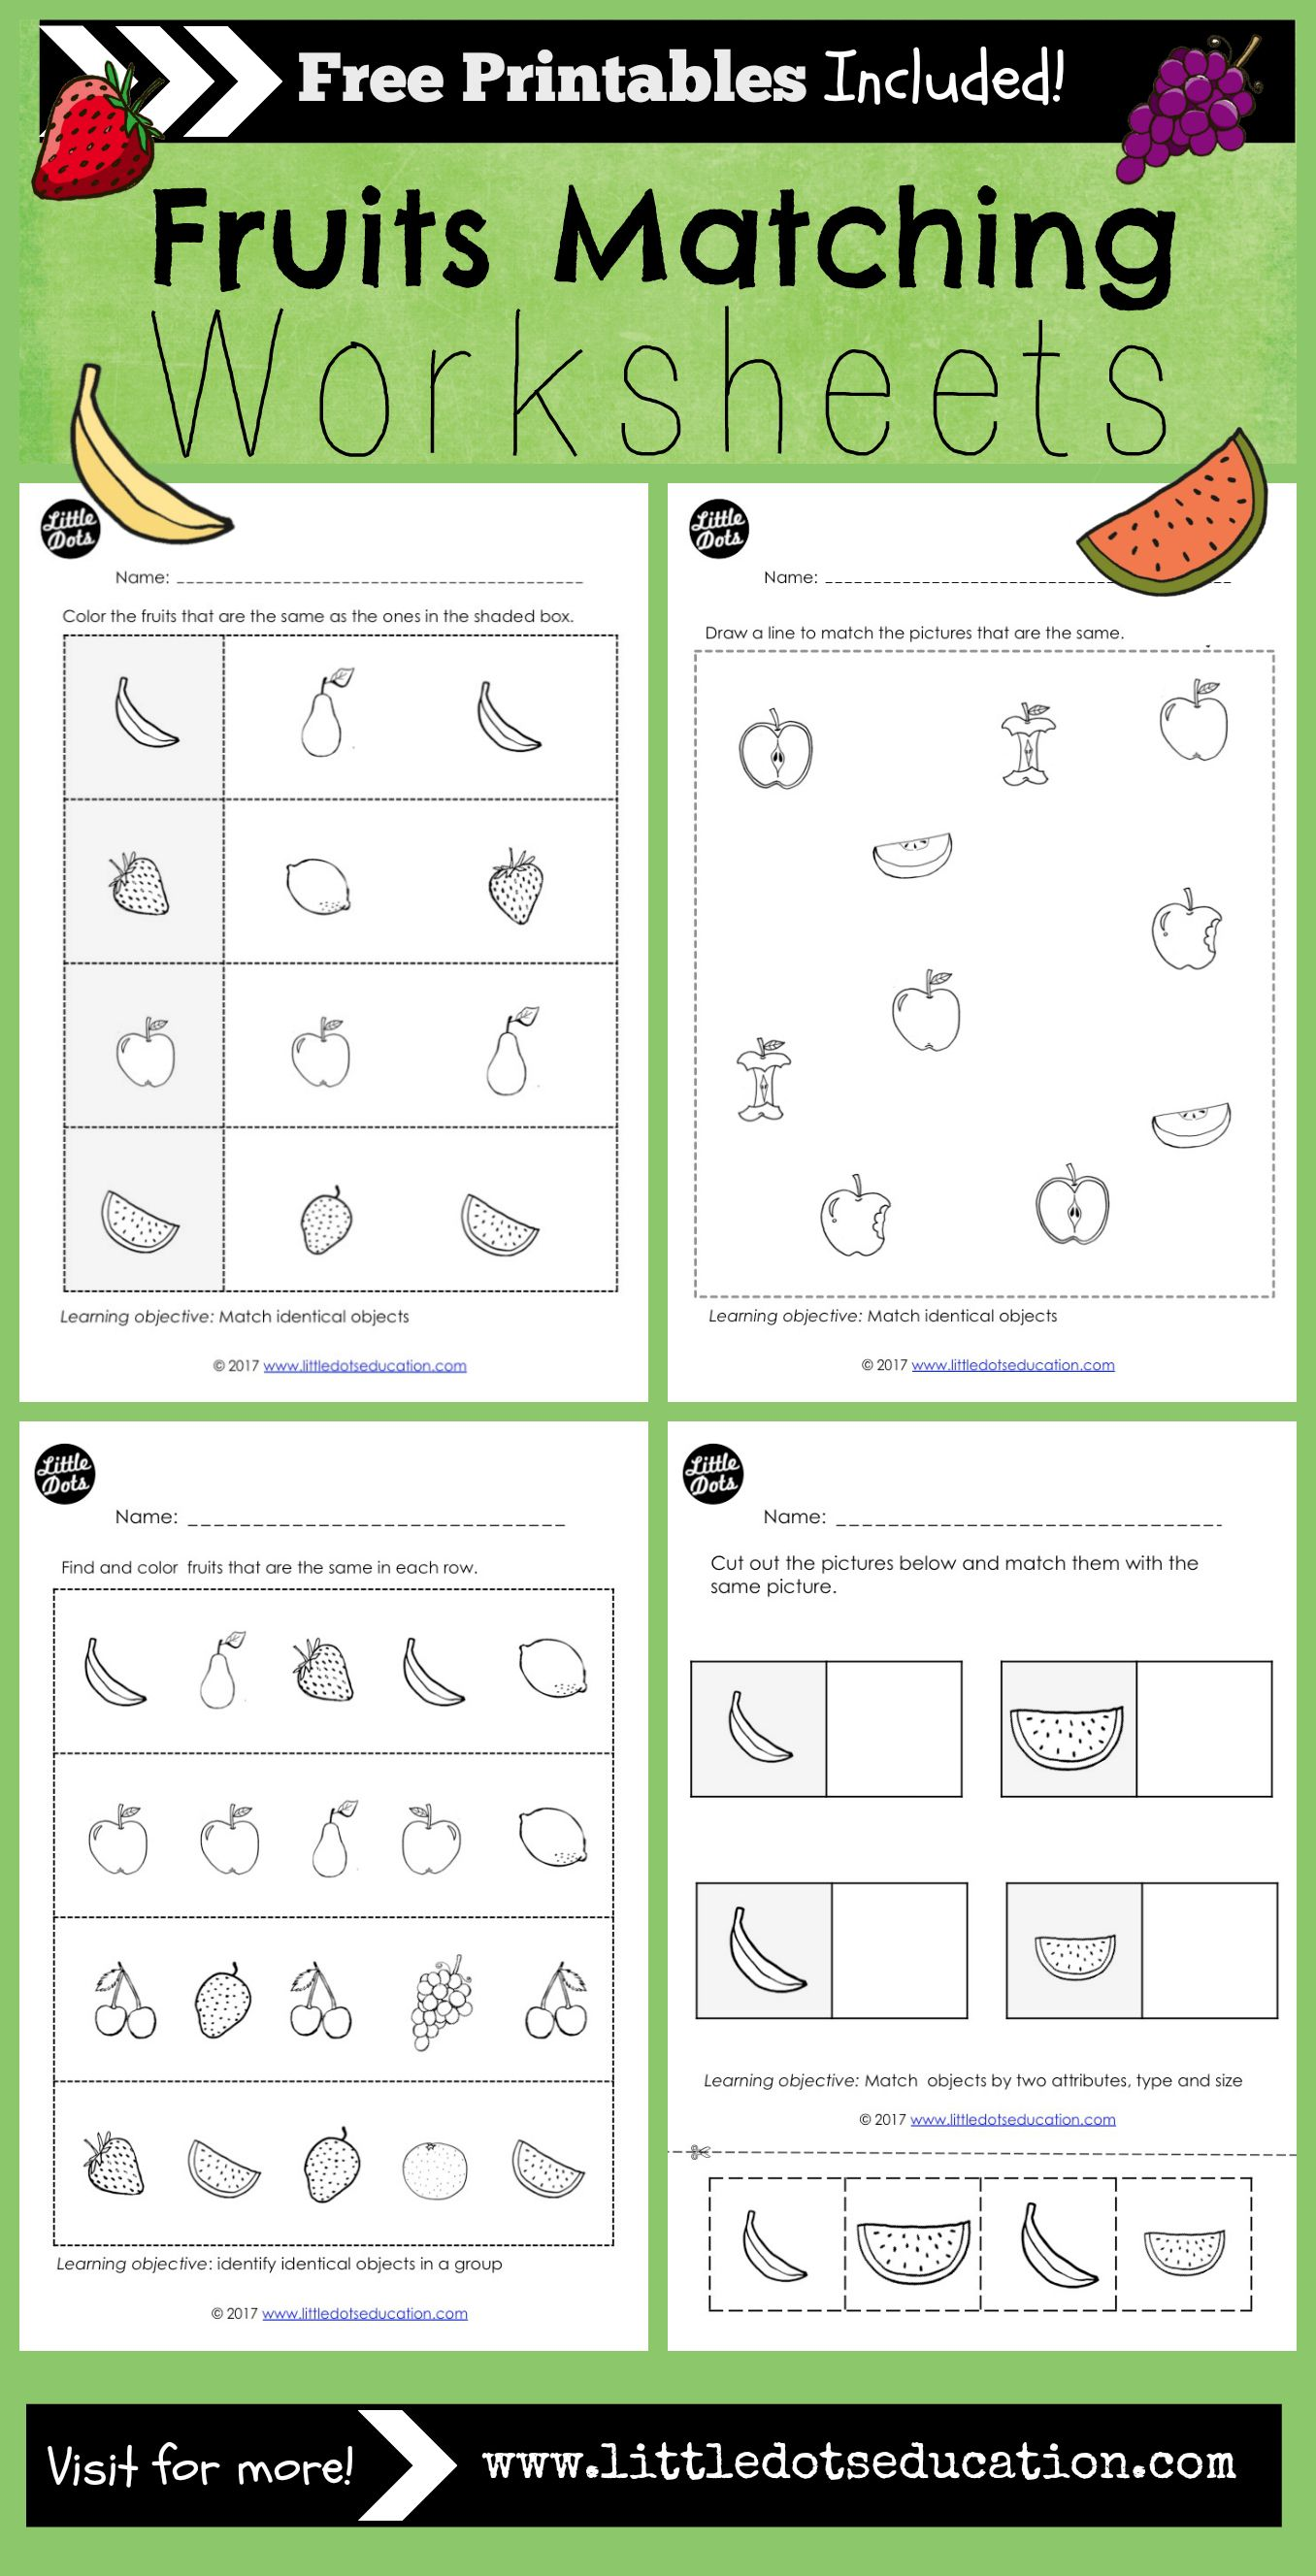 Download high quality matching worksheets and activities for preschool,  pre-k and kindergarten class